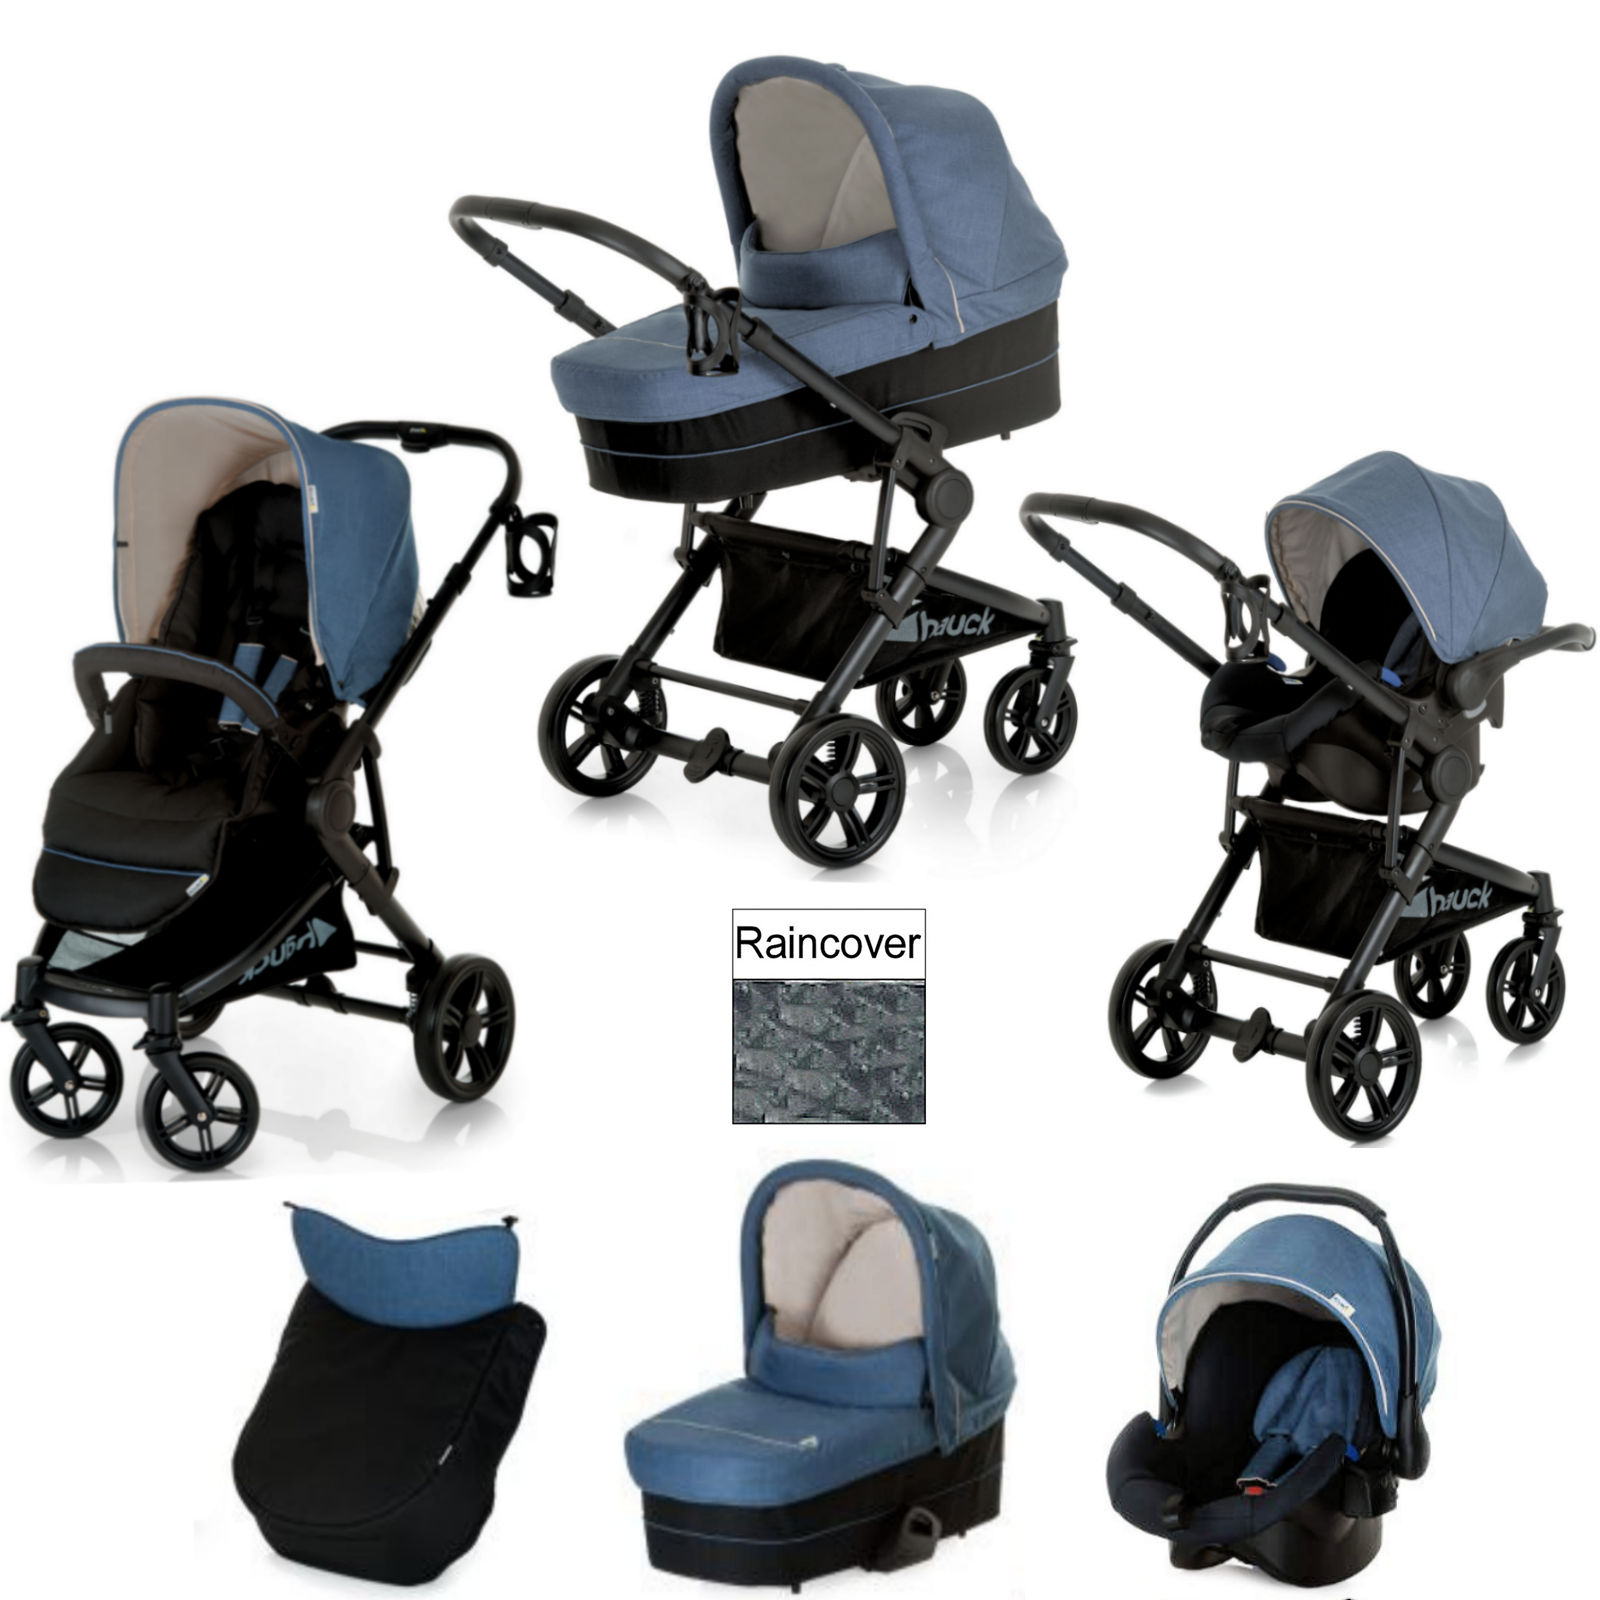 Hauck Shopper Slx Travel System Youtube Hauck Latest Hauck With Hauck Fabulous Hauck Rapid Plus